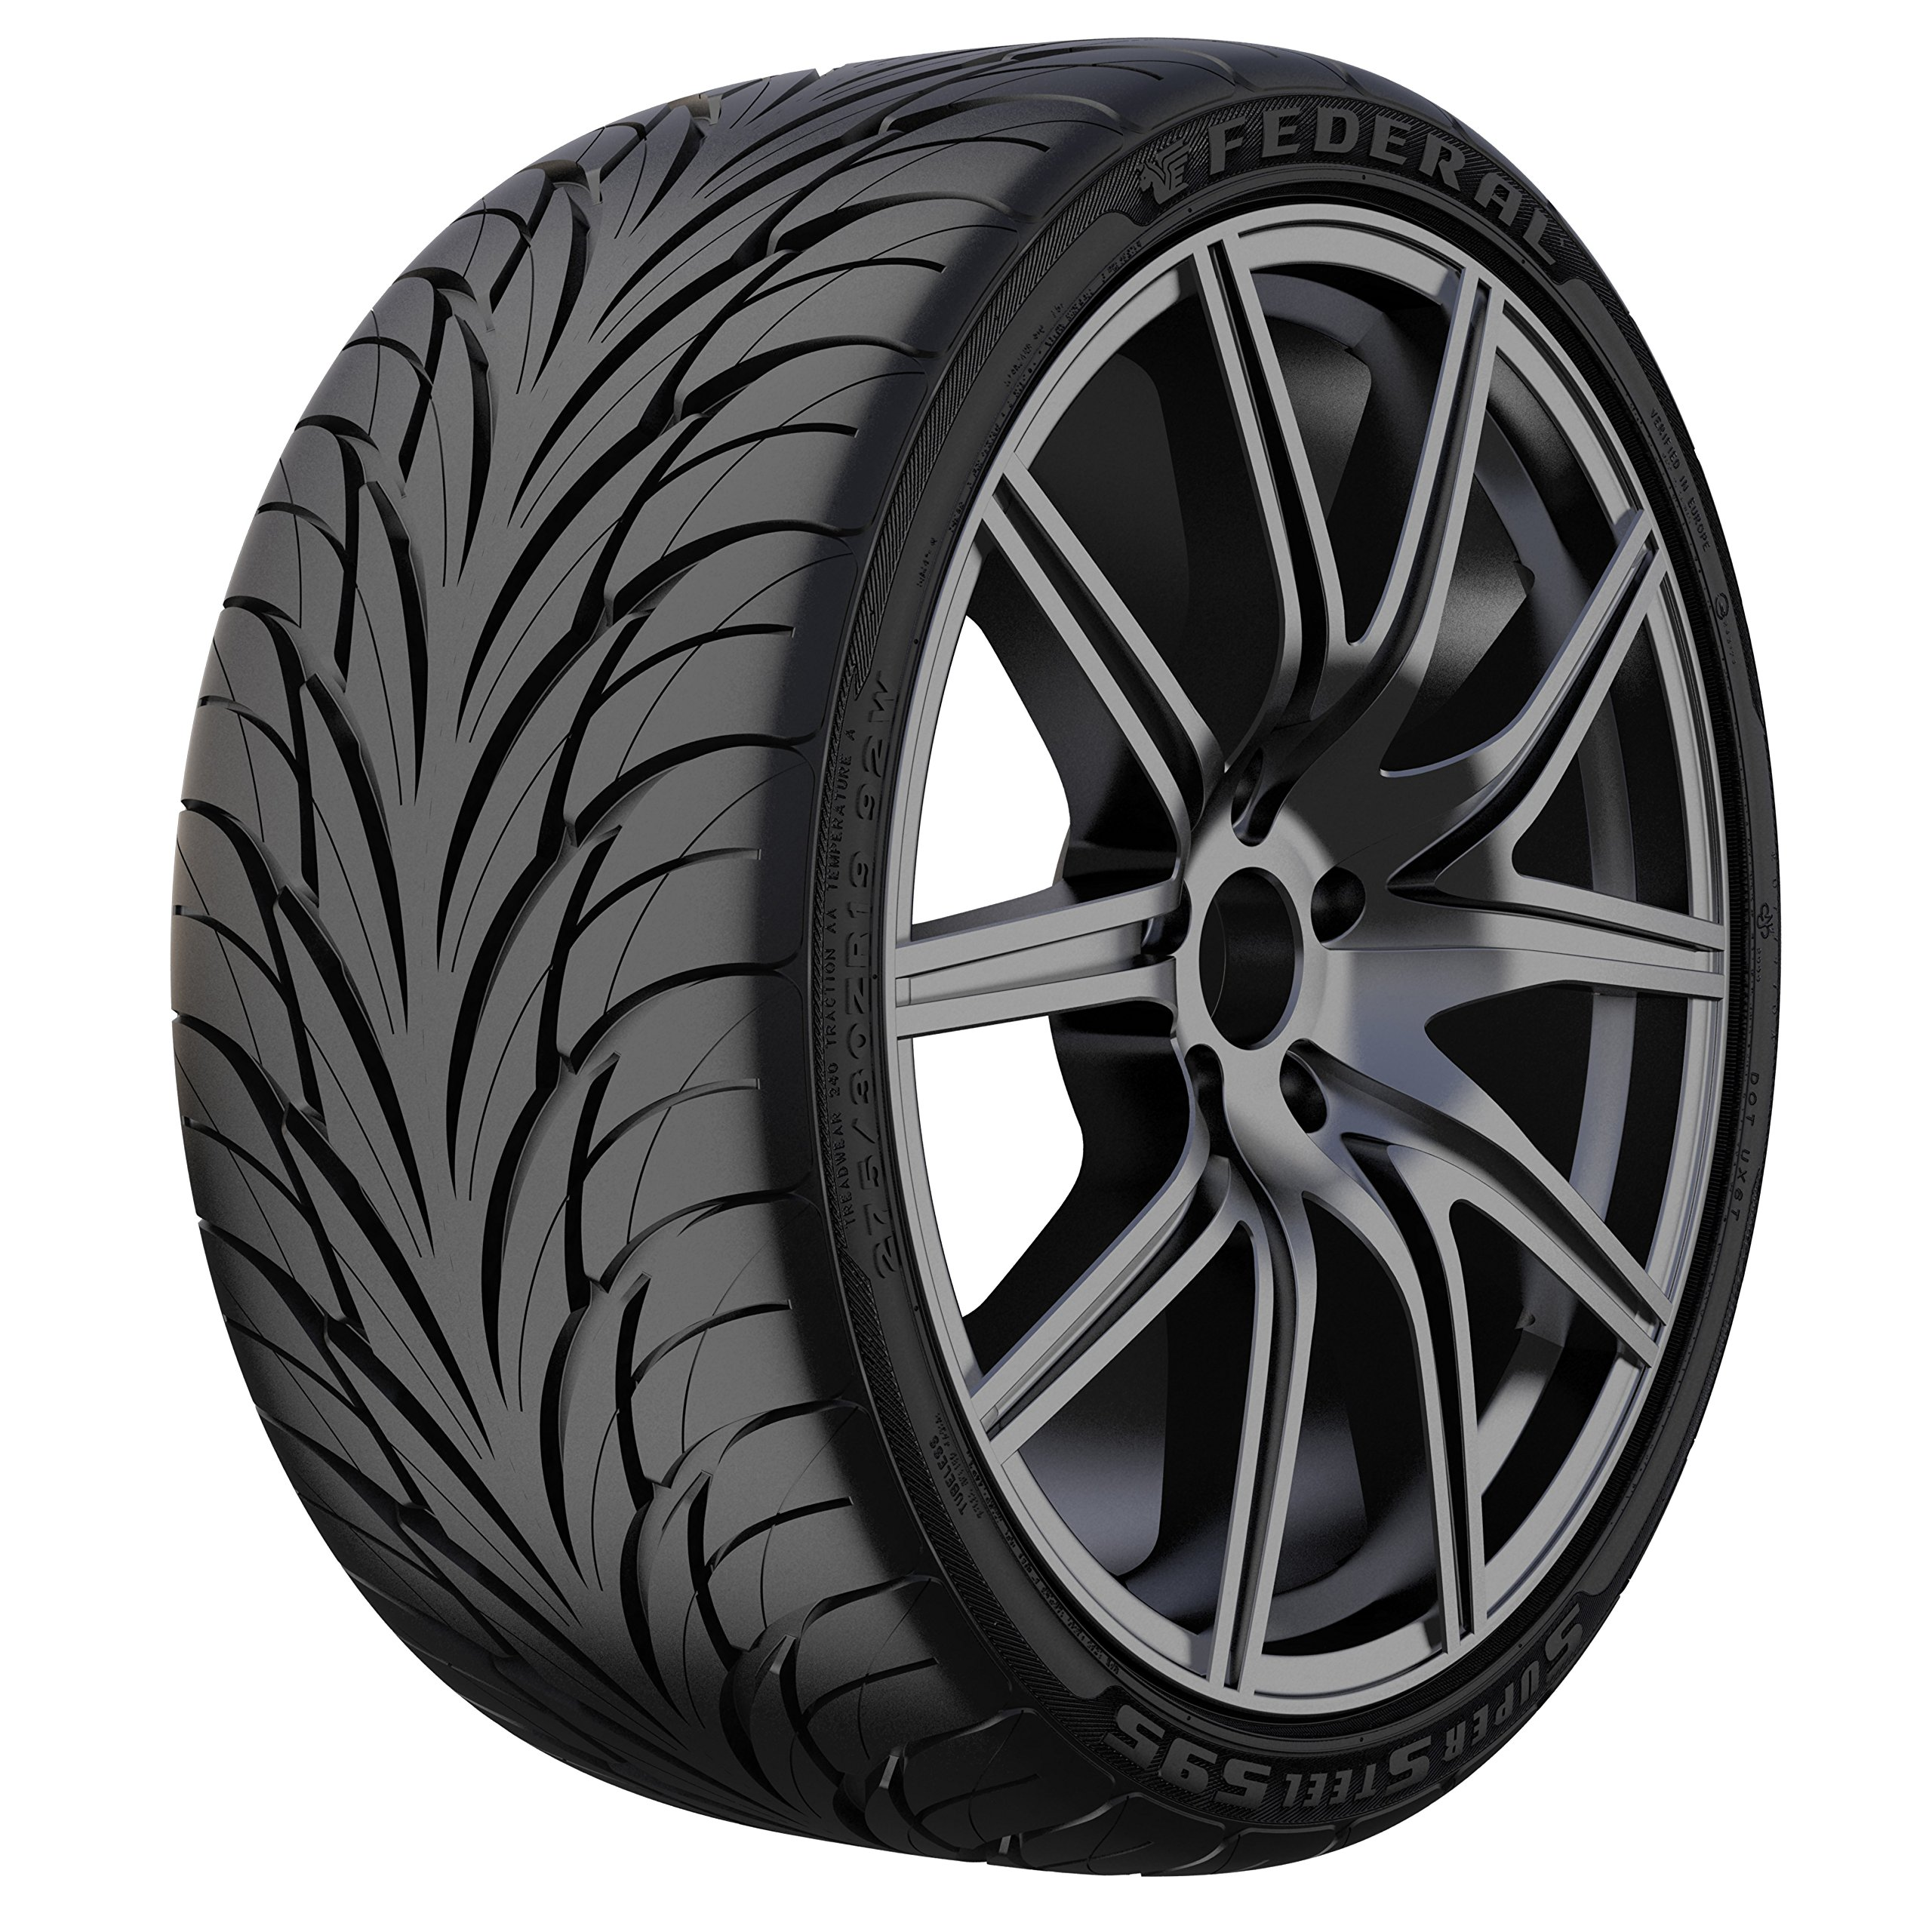 Federal SS-595 Performance Radial Tire - 225/35R18 83W by Federal (Image #1)